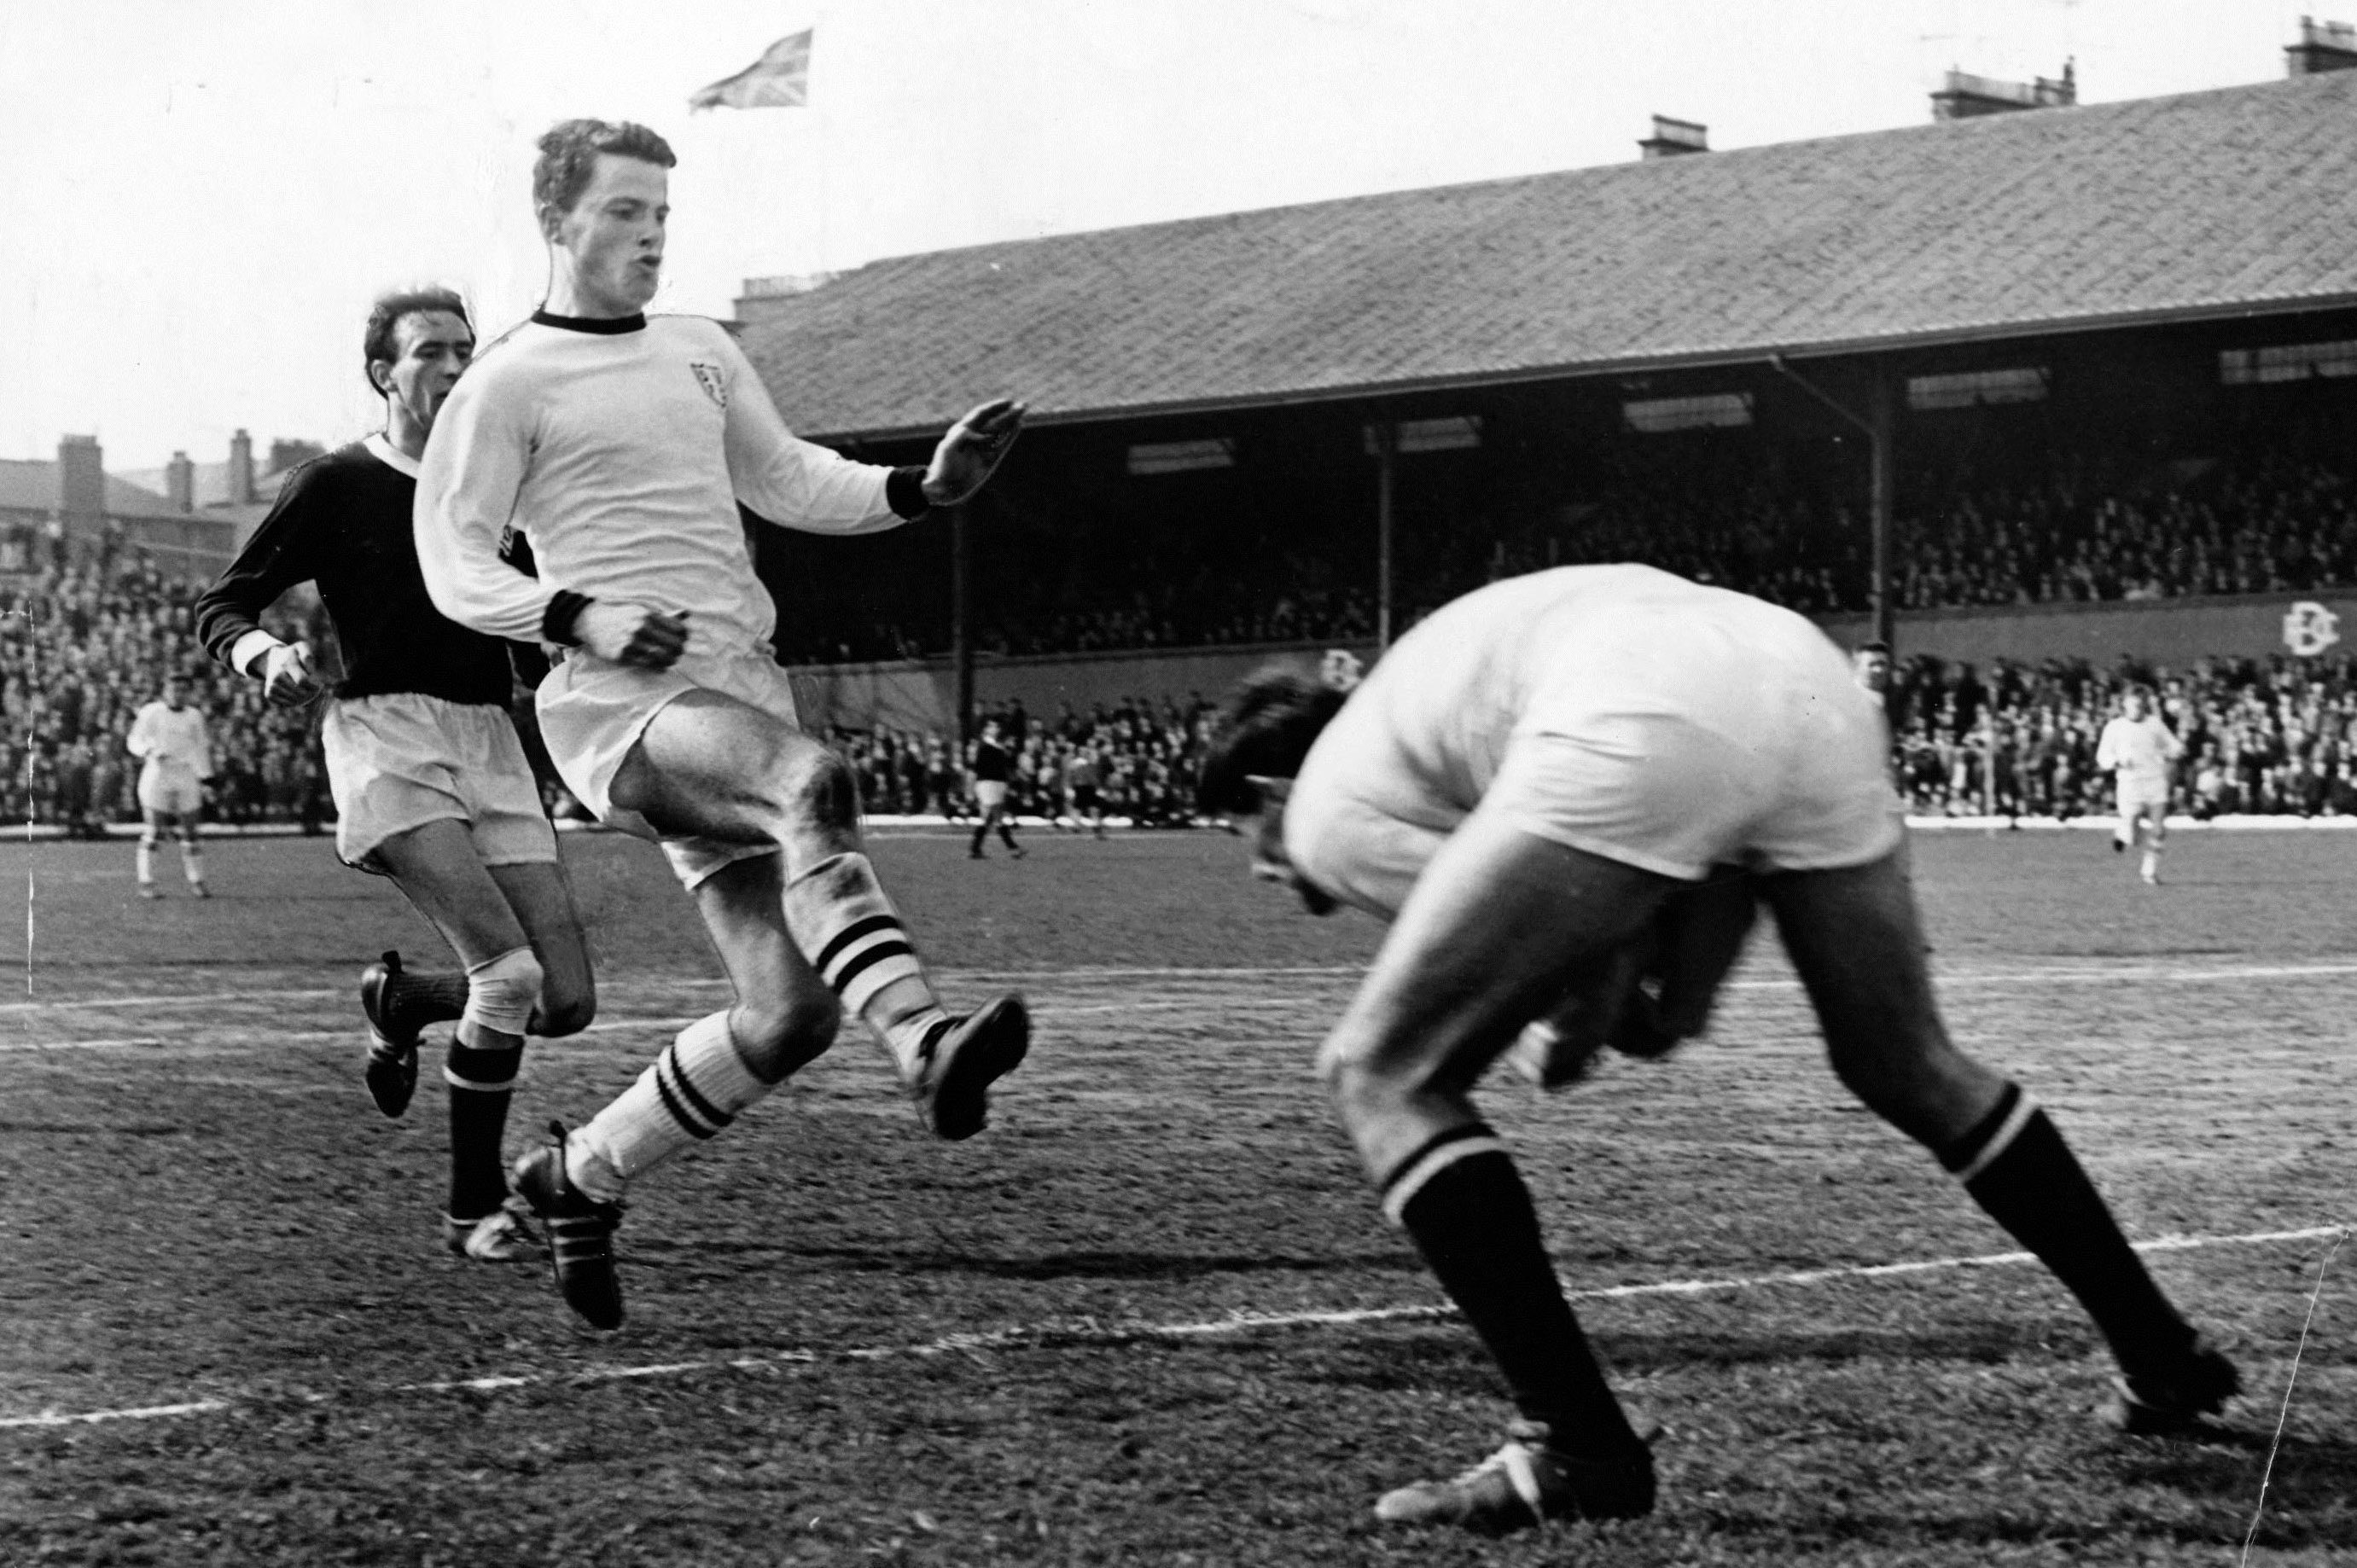 Dundee United legend Finn Dossing tries to toe past the goalkeeper in his time at Tannadice